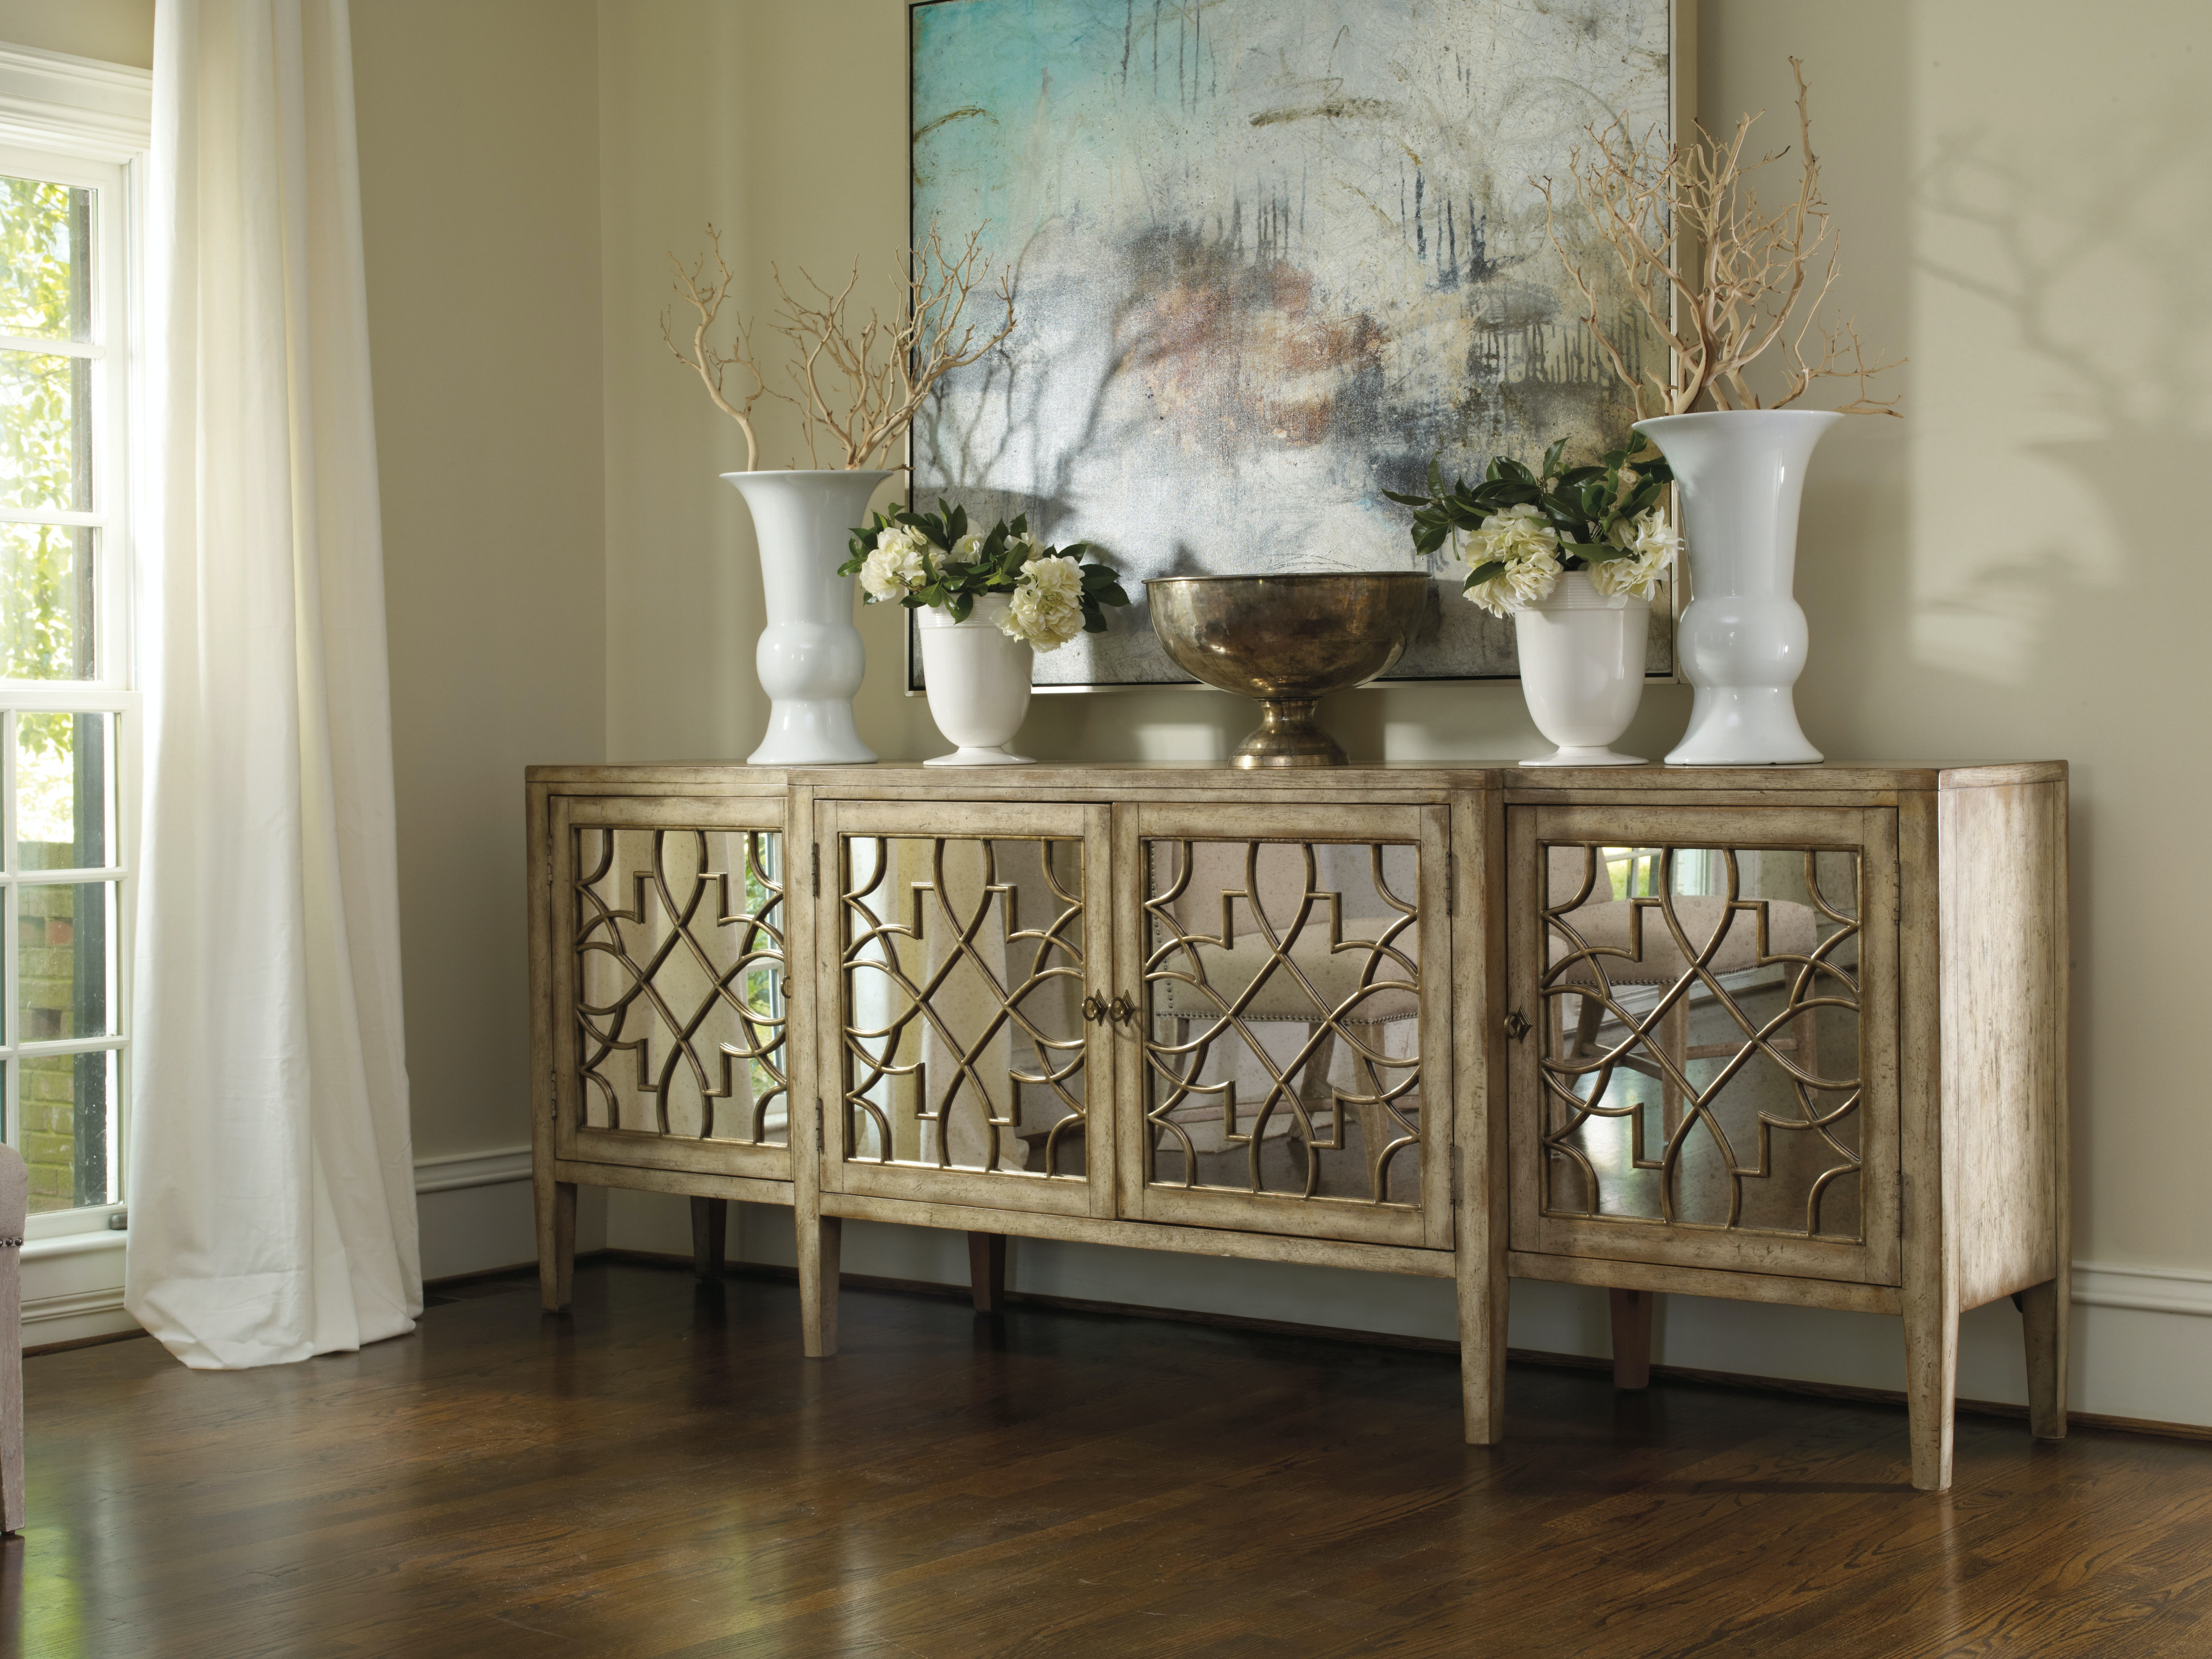 Mirrored Living Room Furniture Hooker Furniture Living Room Sanctuary Four Door Mirrored Console